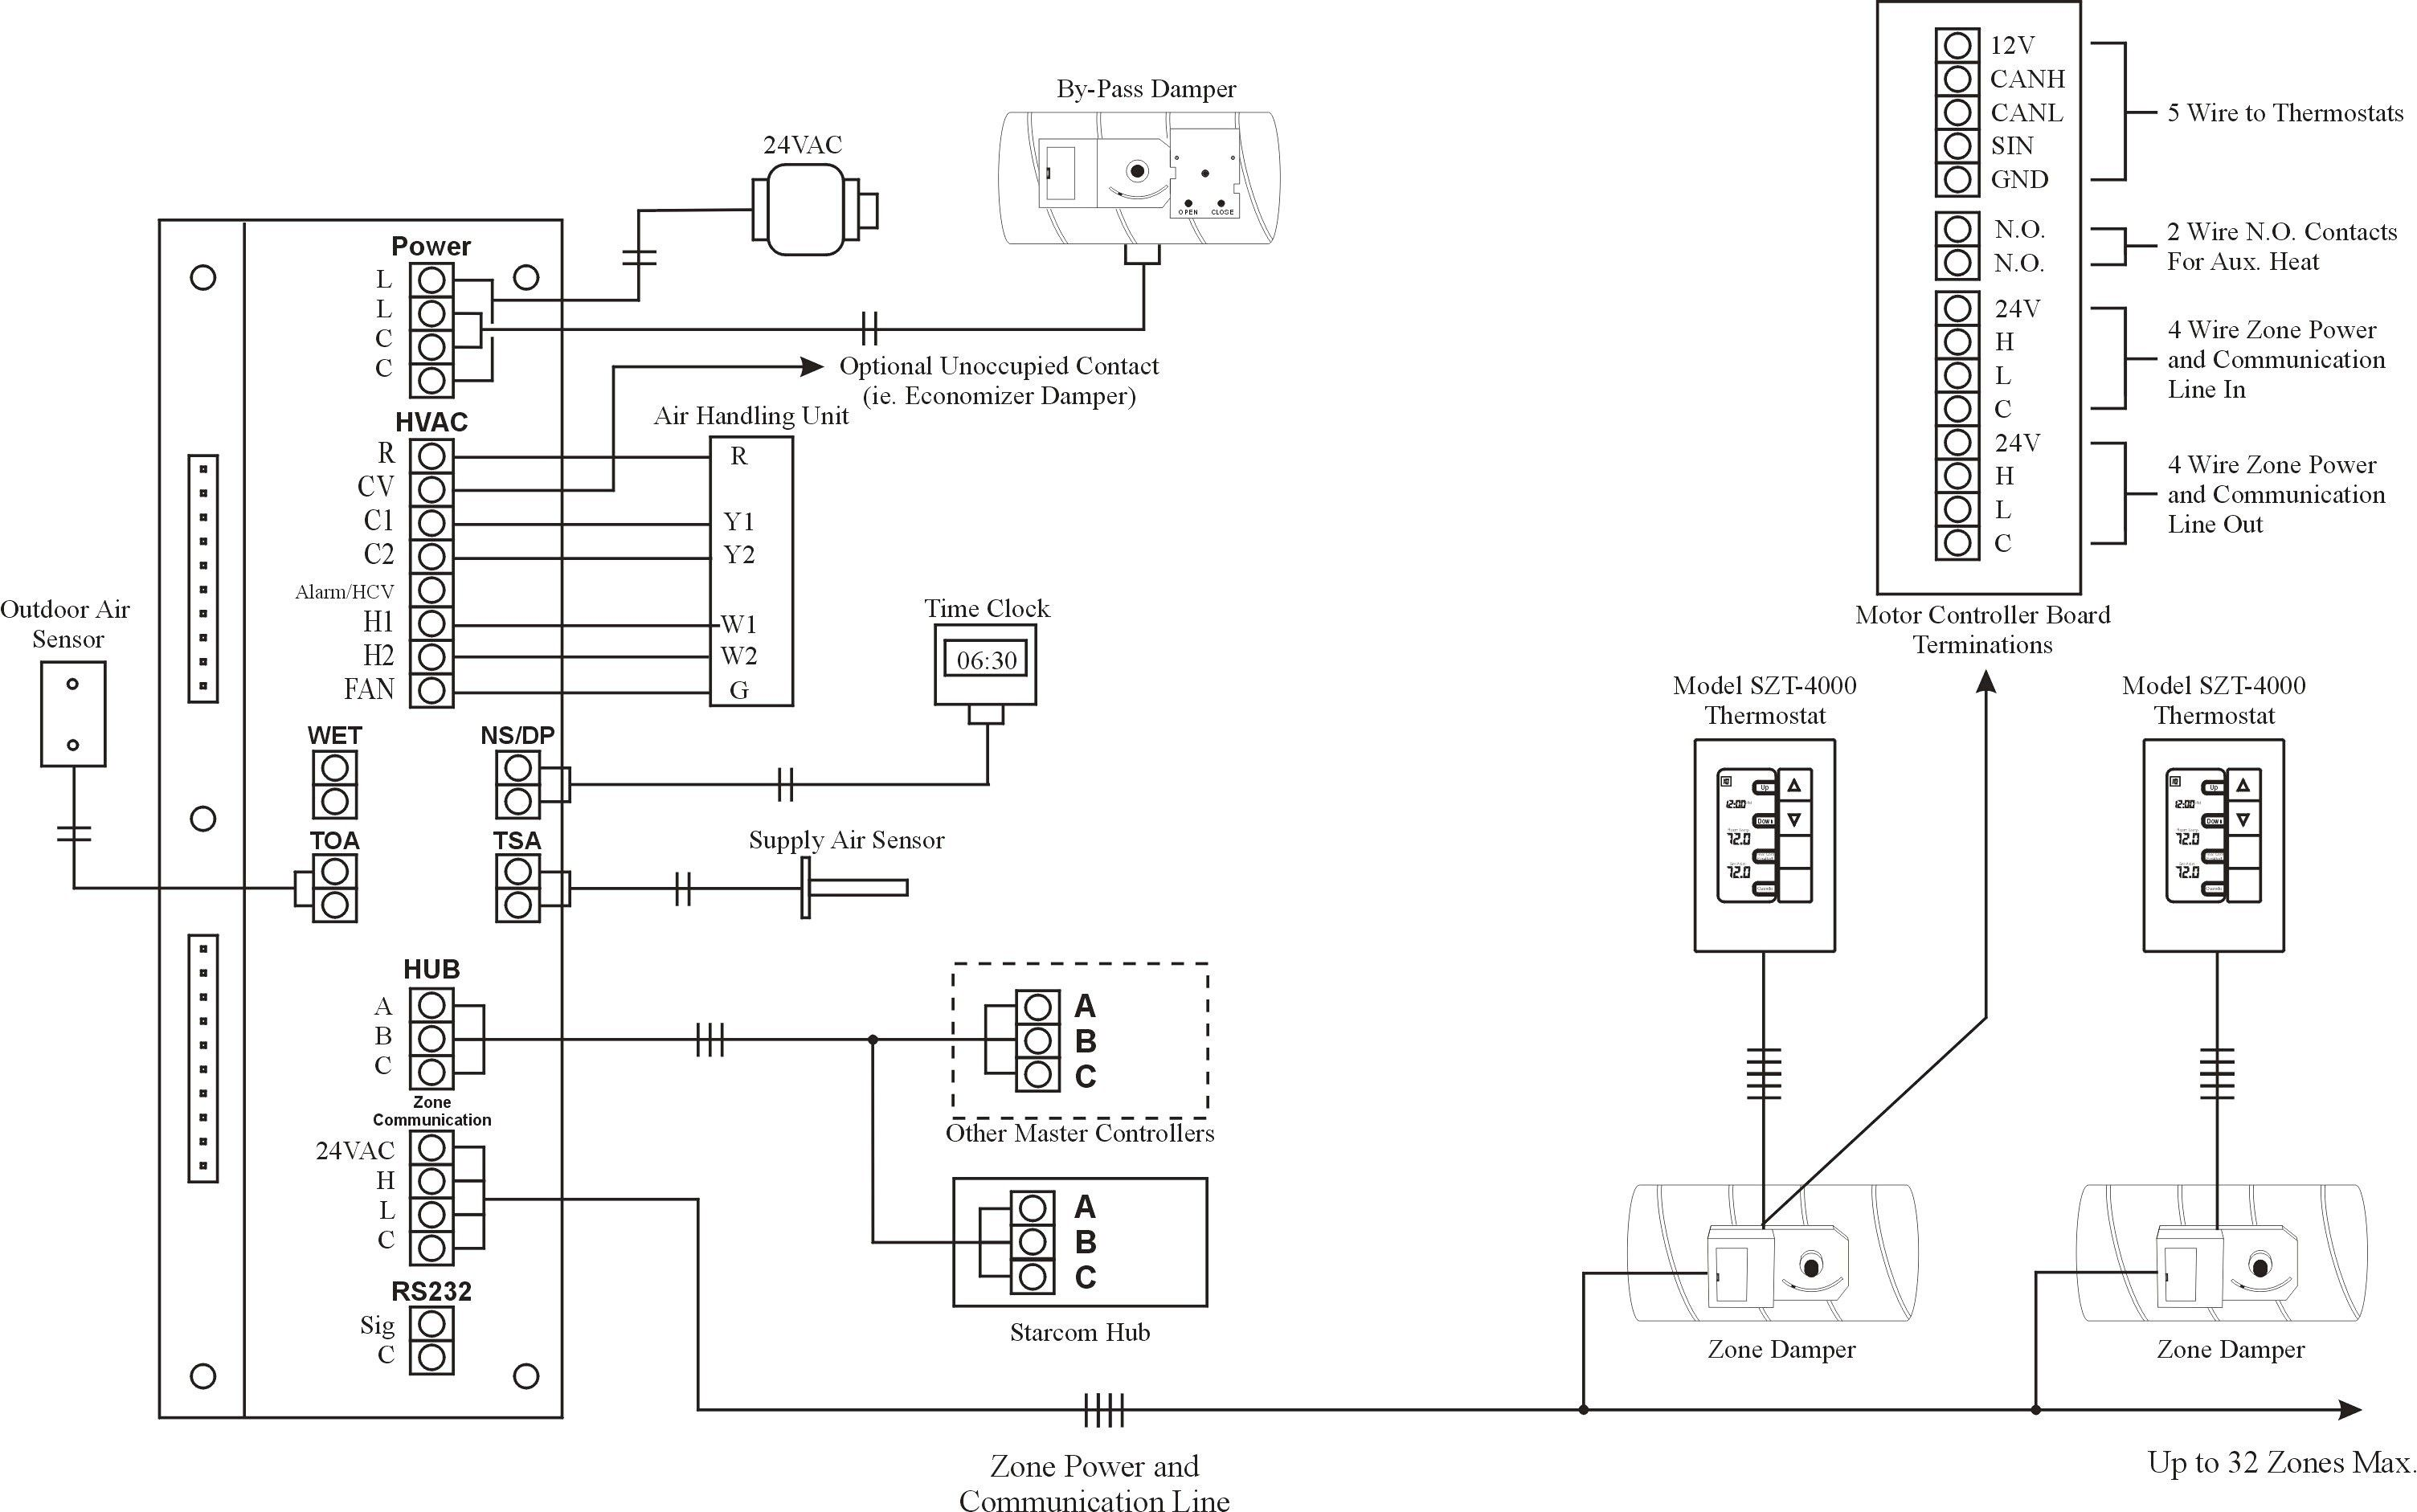 System Sensor D4120 Wiring Diagram Mercedes Benz W123 Alternator Wiring Diagram For Wiring Diagram Schematics